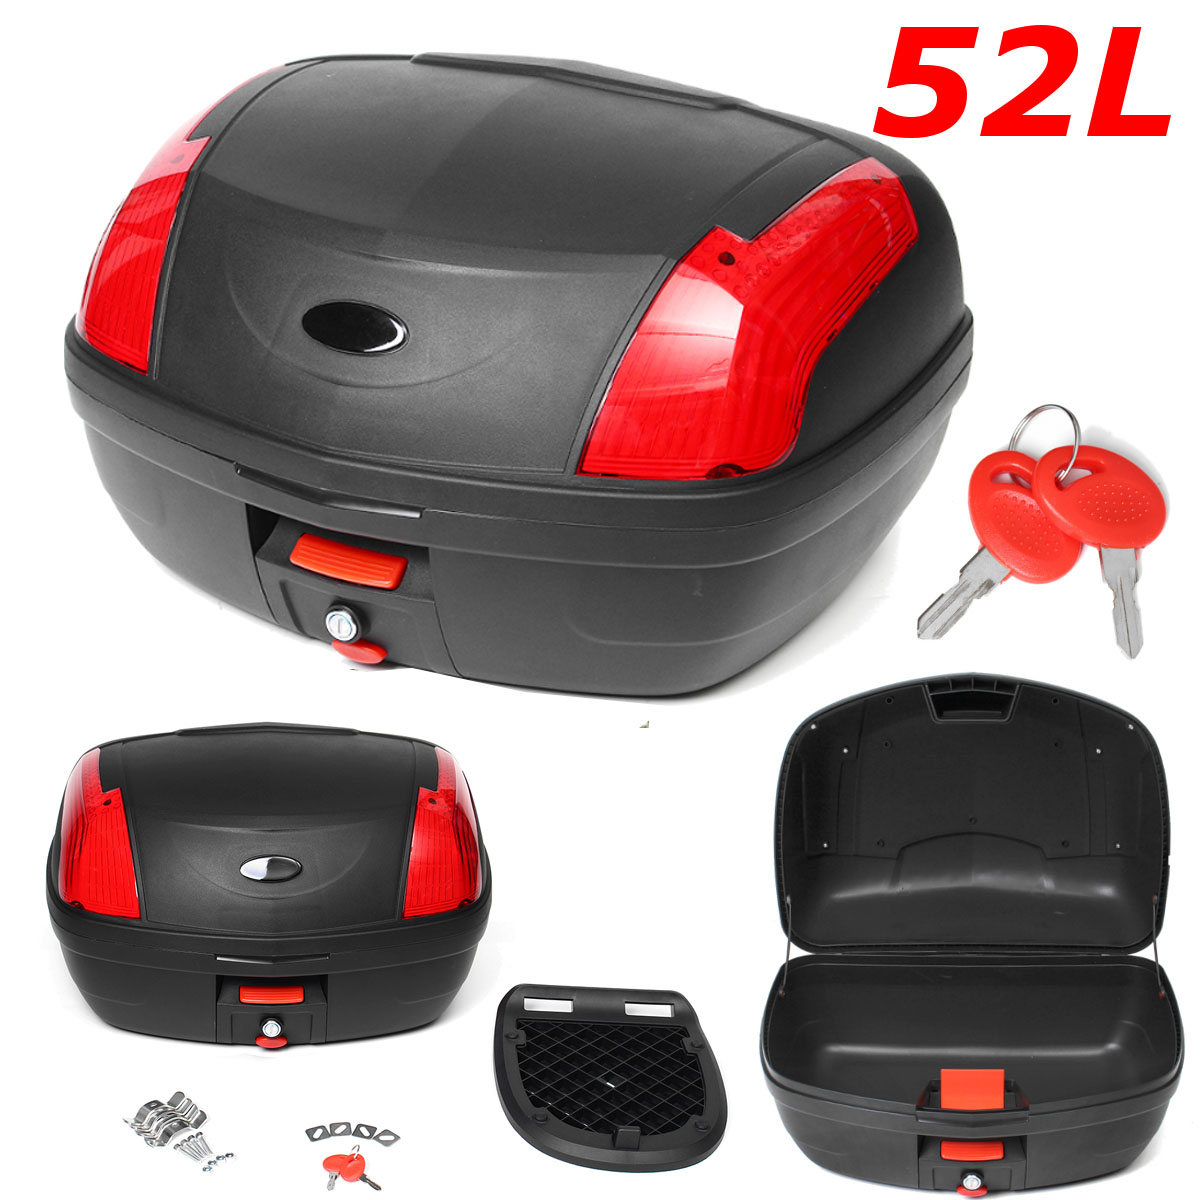 52L Secure Latch Black Motorcycle Trunk With Lock Black Scooter Topbox Durable Rear Storage Luggage Top Box Case 55x42x32cm New52L Secure Latch Black Motorcycle Trunk With Lock Black Scooter Topbox Durable Rear Storage Luggage Top Box Case 55x42x32cm New